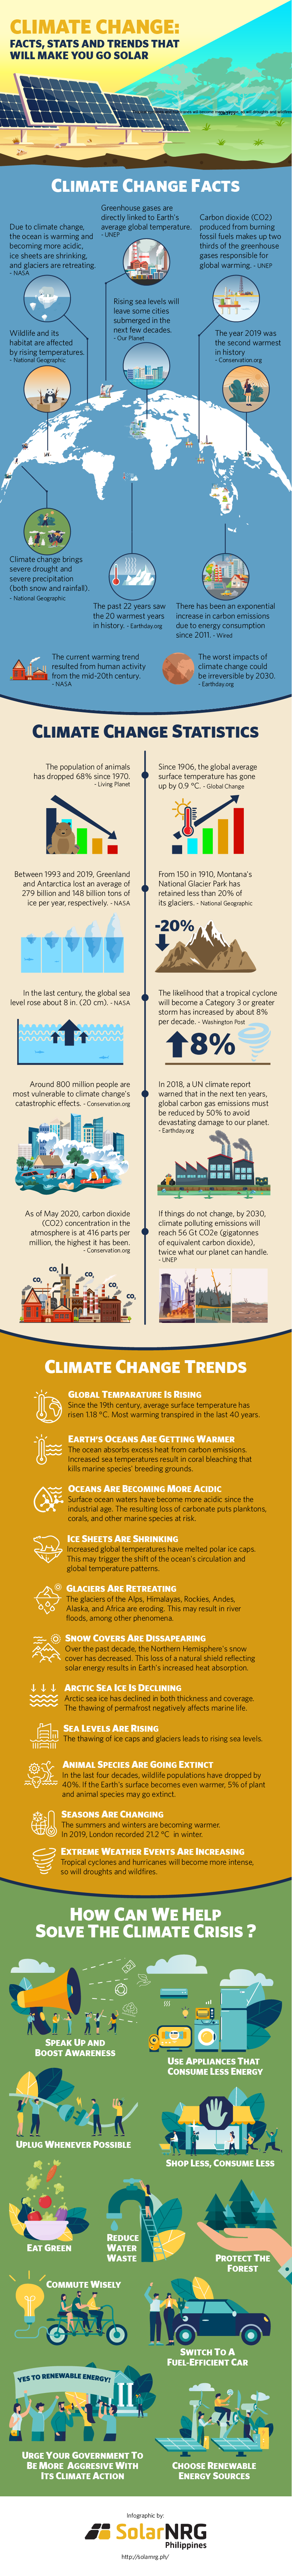 Infographic about climate change